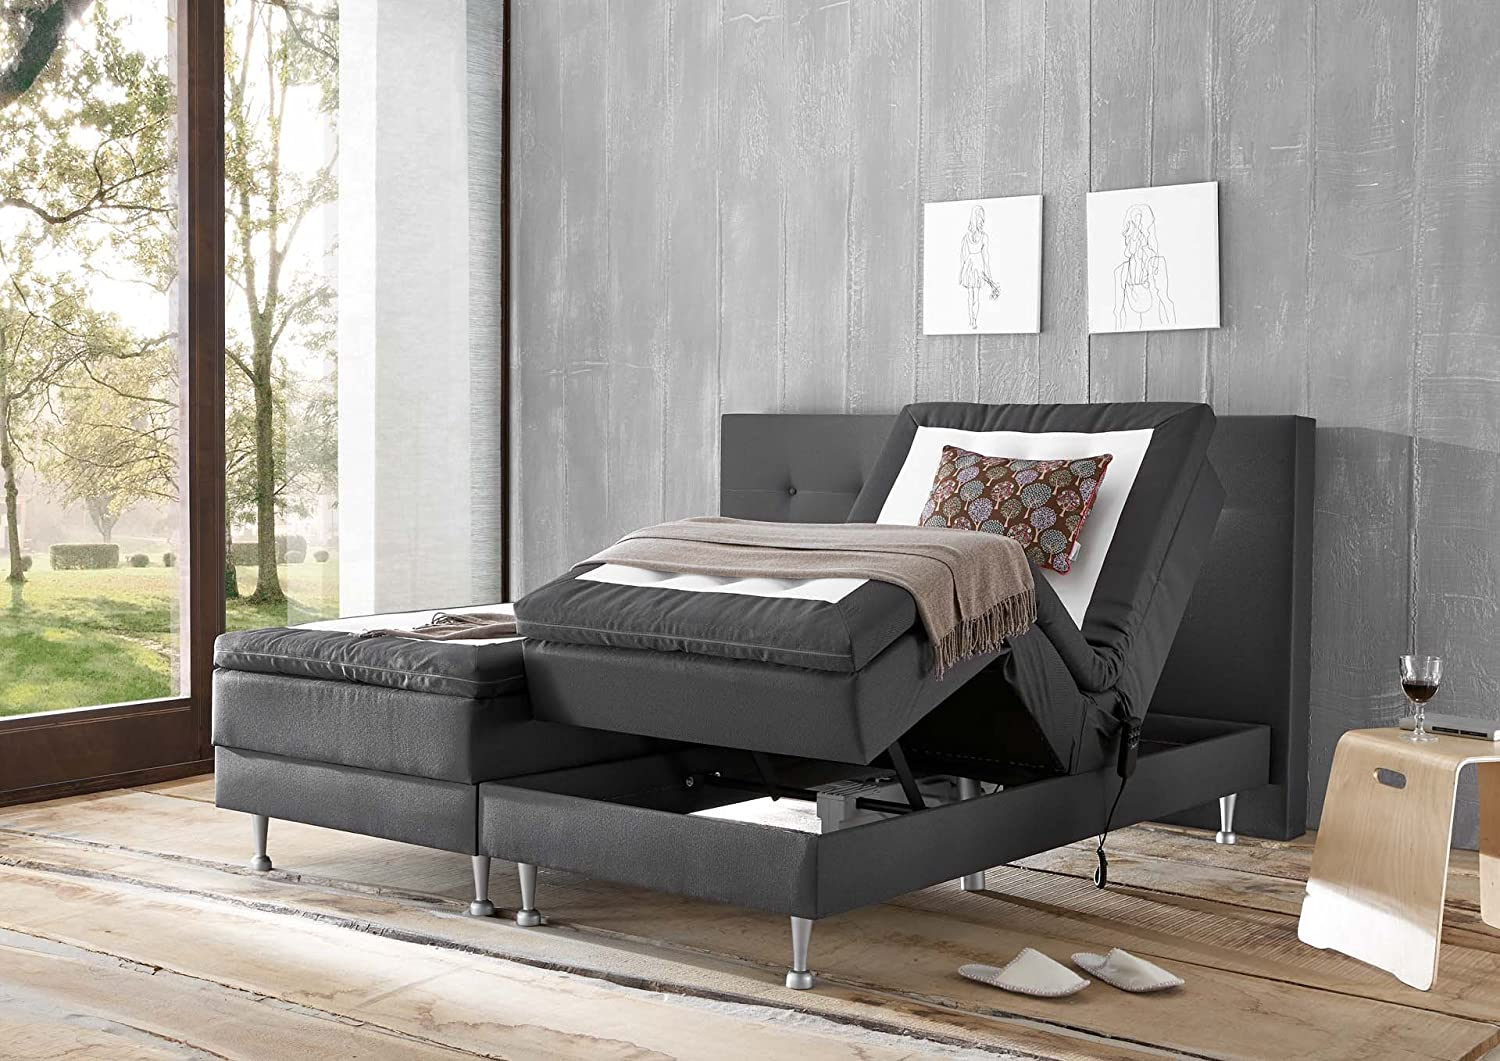 wellness edition 18332 boxspringbett boxspringbett 180x200 beste wahl boxspringbetten. Black Bedroom Furniture Sets. Home Design Ideas